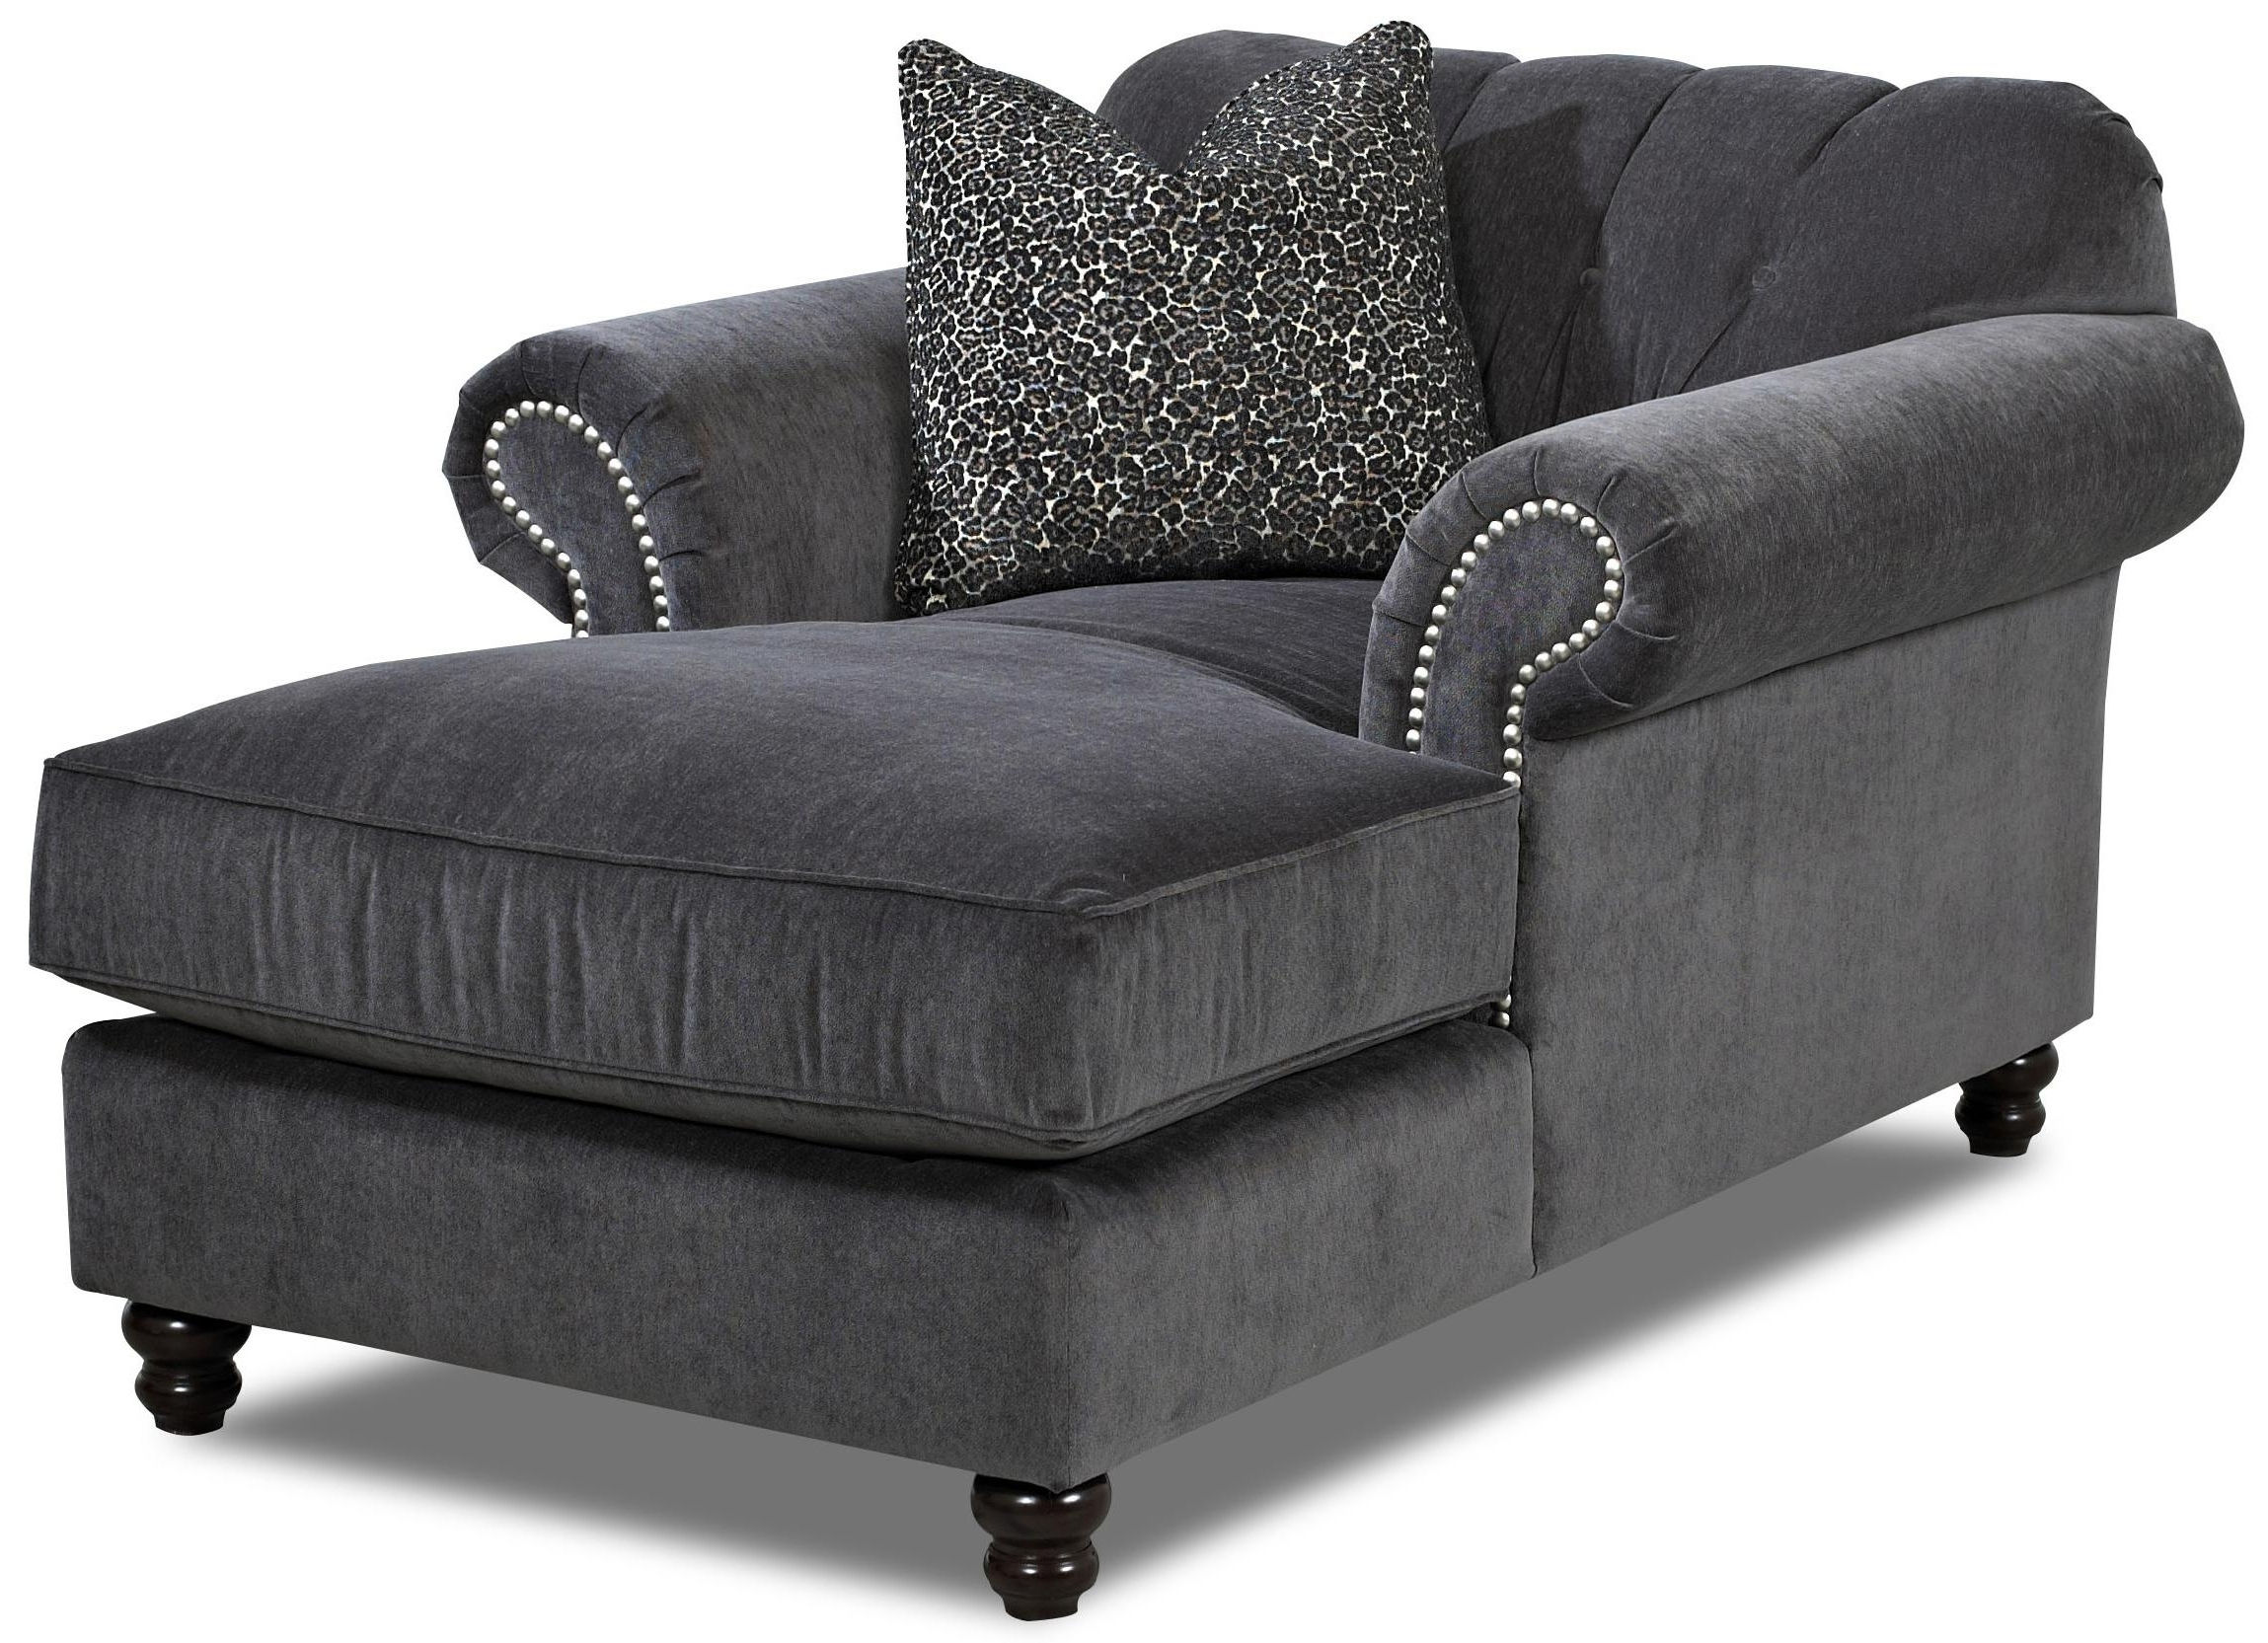 Trendy Grey Chaise Lounges Within Lounge Chair : Furniture Oversized Chaise Lounge Sofa Leather (View 5 of 15)